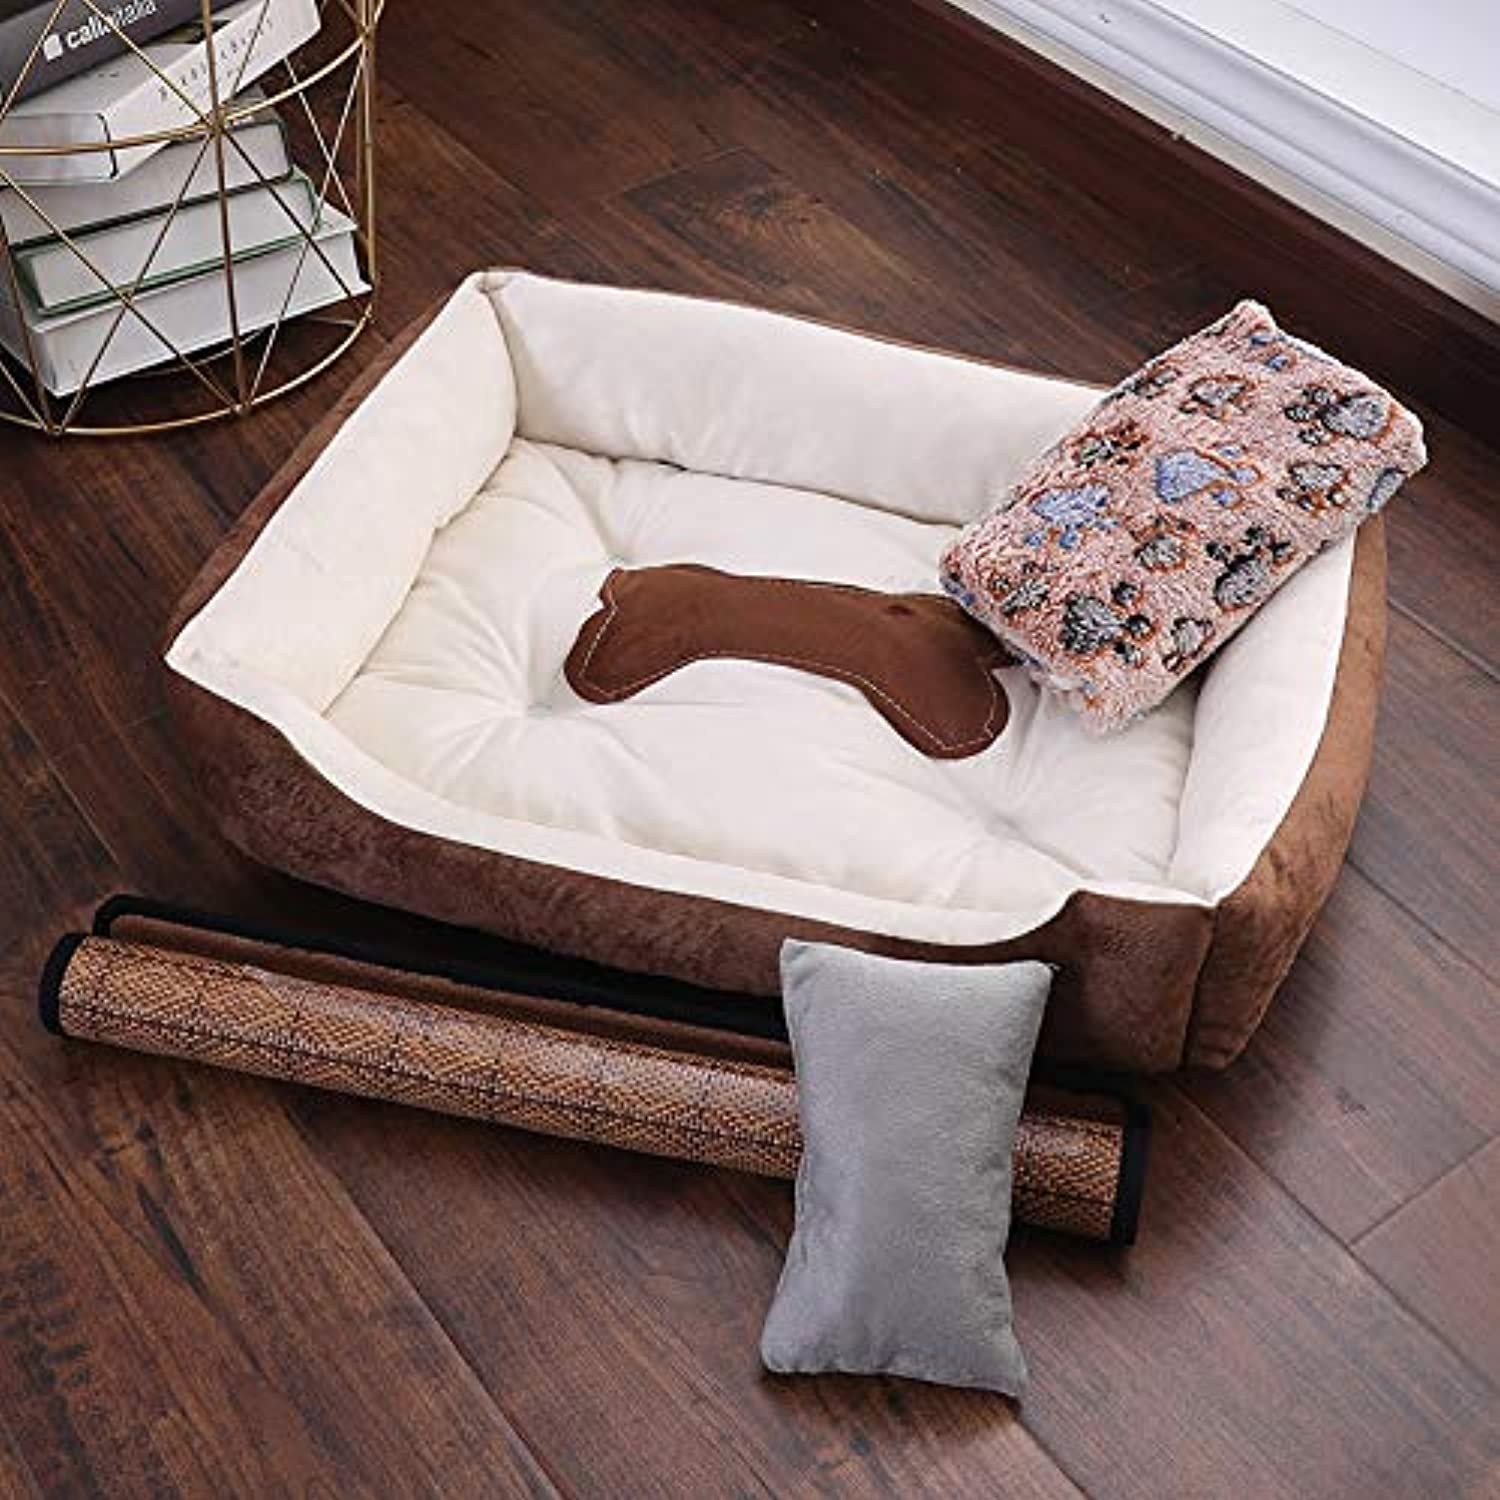 Glashaus Kennel winter Baodi small dog large dog bed four seasons universal dog mat pet nest cat litter, coffee beige fourpiece suit, 80  60cm